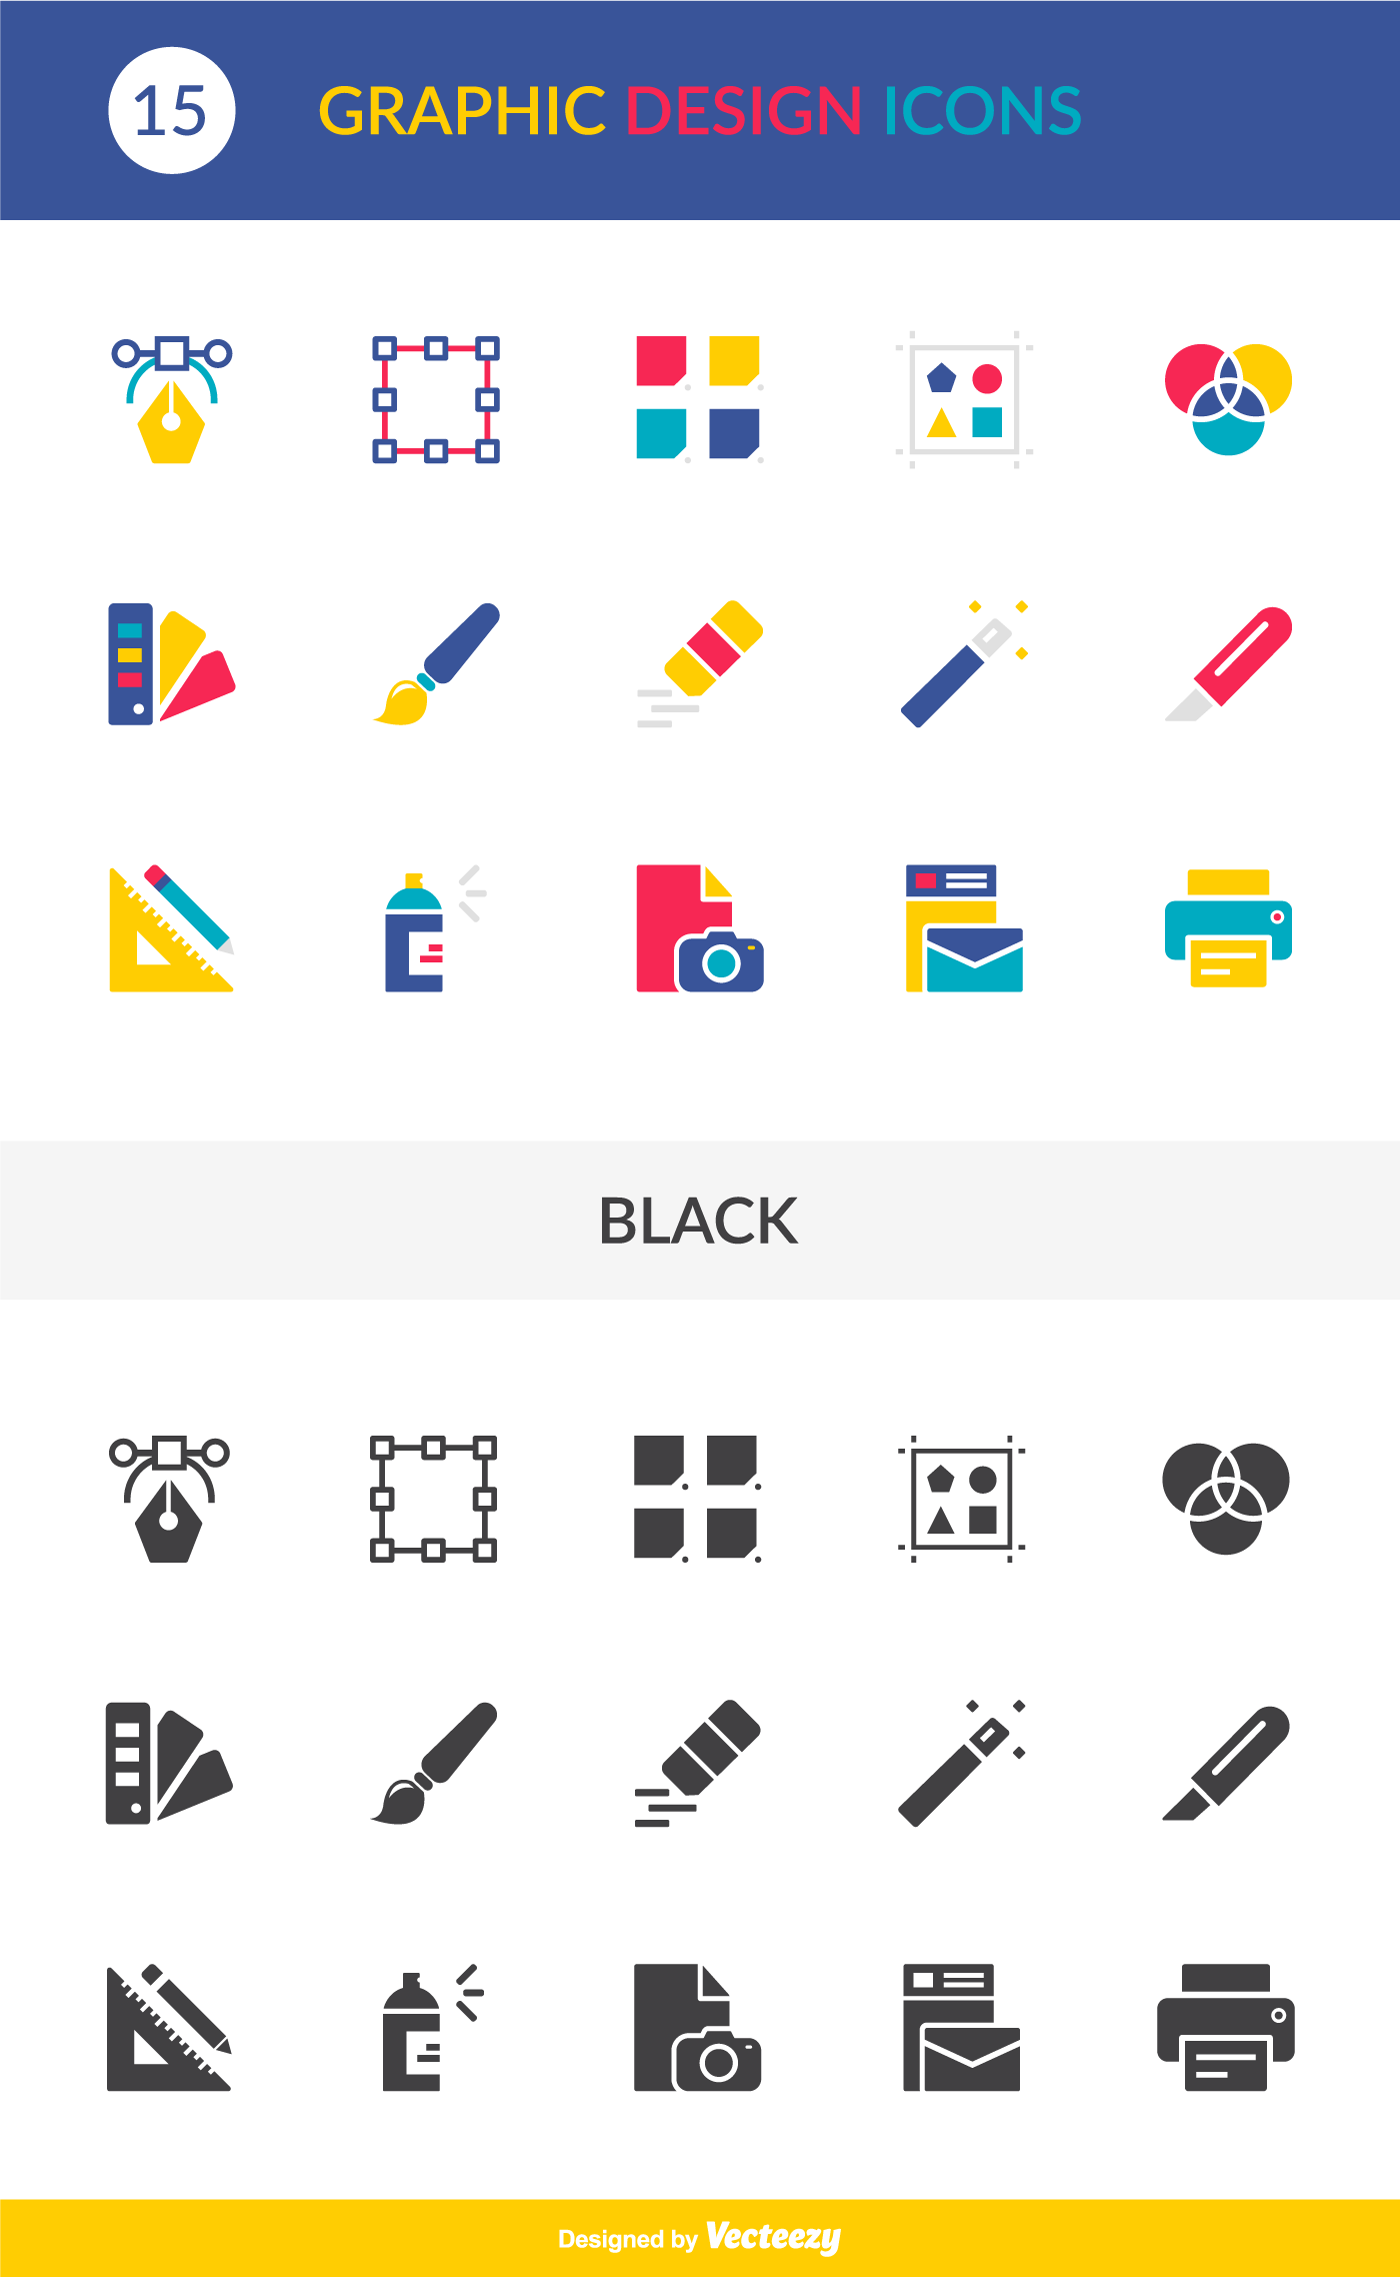 Free Graphic Design Icons EPS Vector Pack